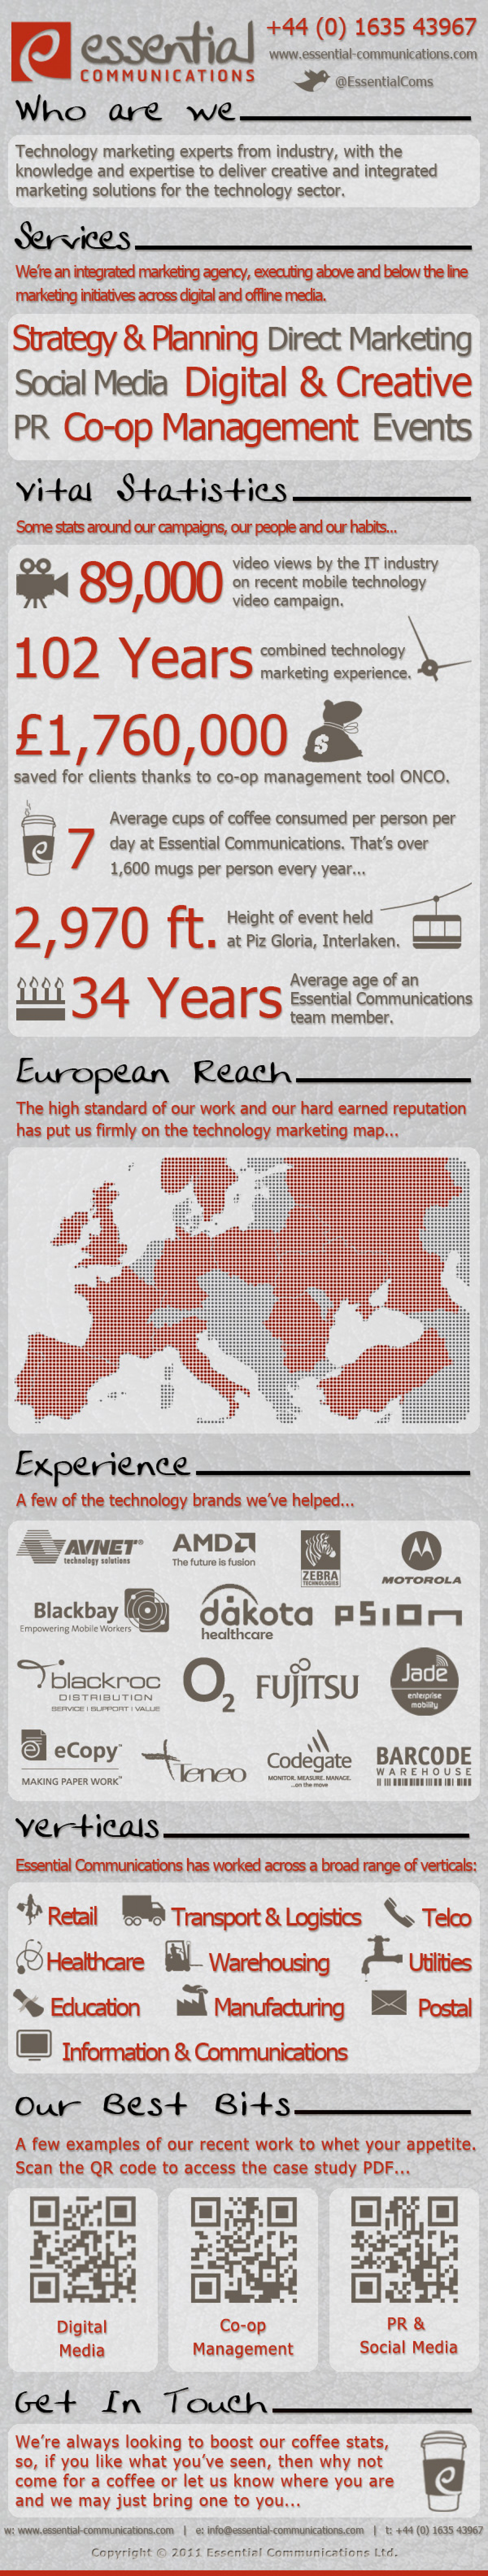 A Picture Speaks 1000 Word... What About an Infographic? Infographic